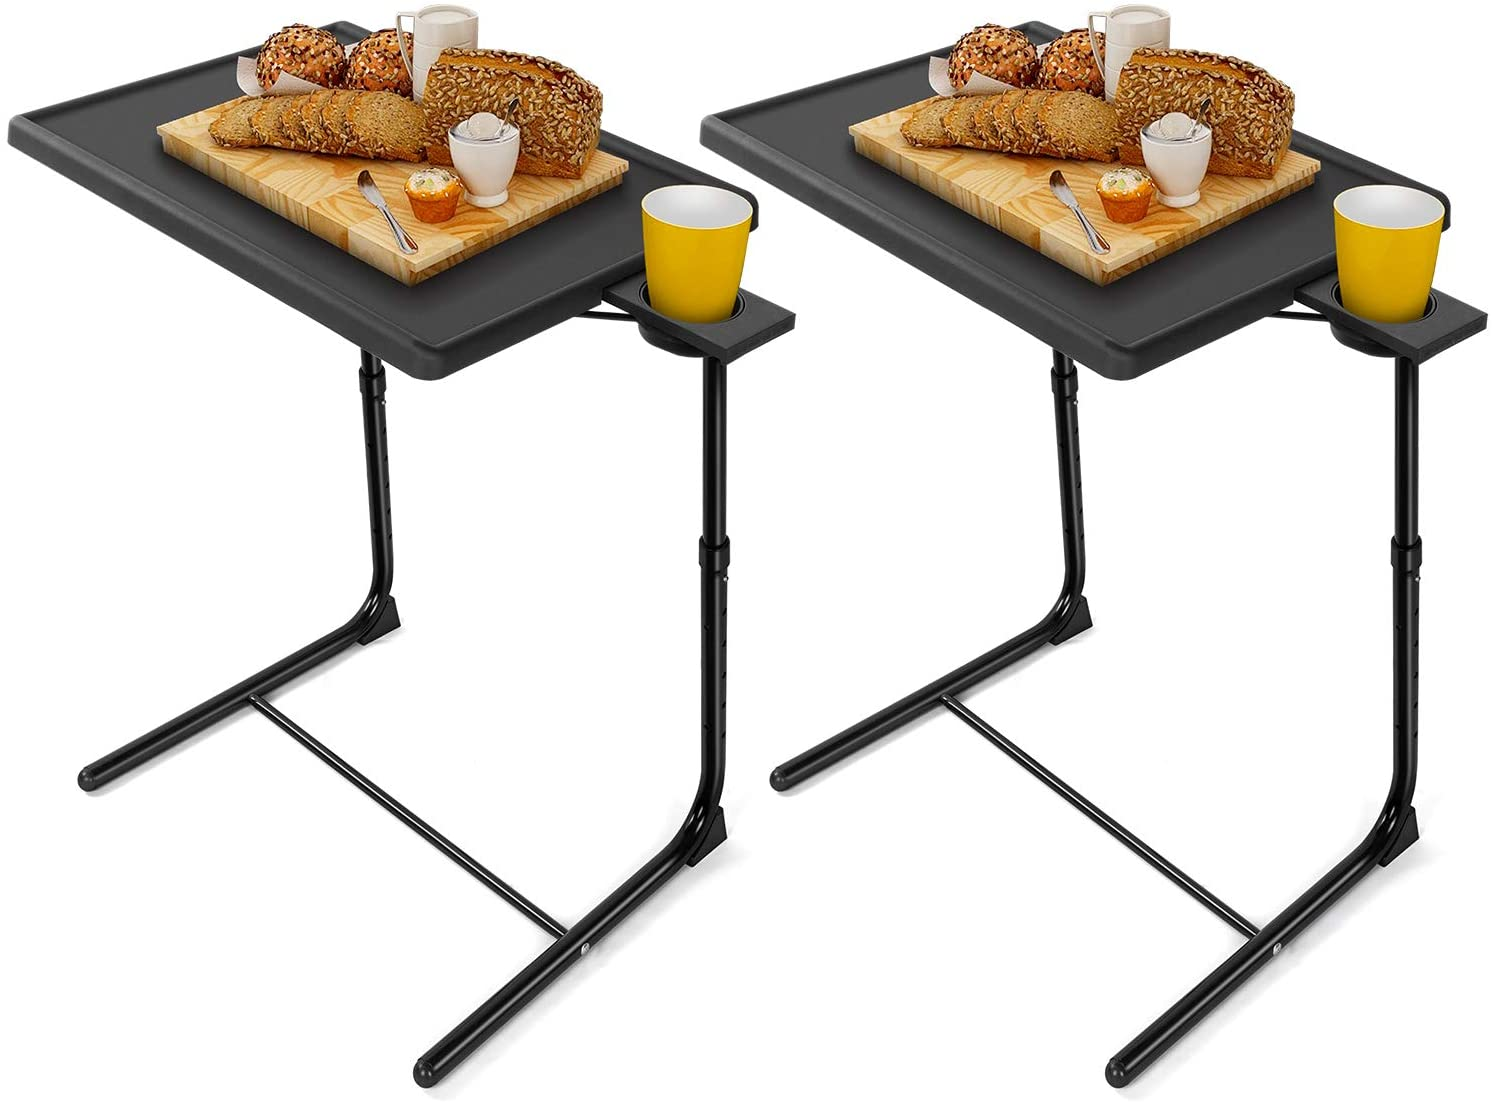 LORYERGO TV Tray Table - Adjustable TV Dinner Tray Tables with 6 Height & 3 Tilt Angle, Folding TV Trays with Cup Holder for Bed & Sofa, Multifunctional TV Table Tray for Eating & Reading(2 Pack)